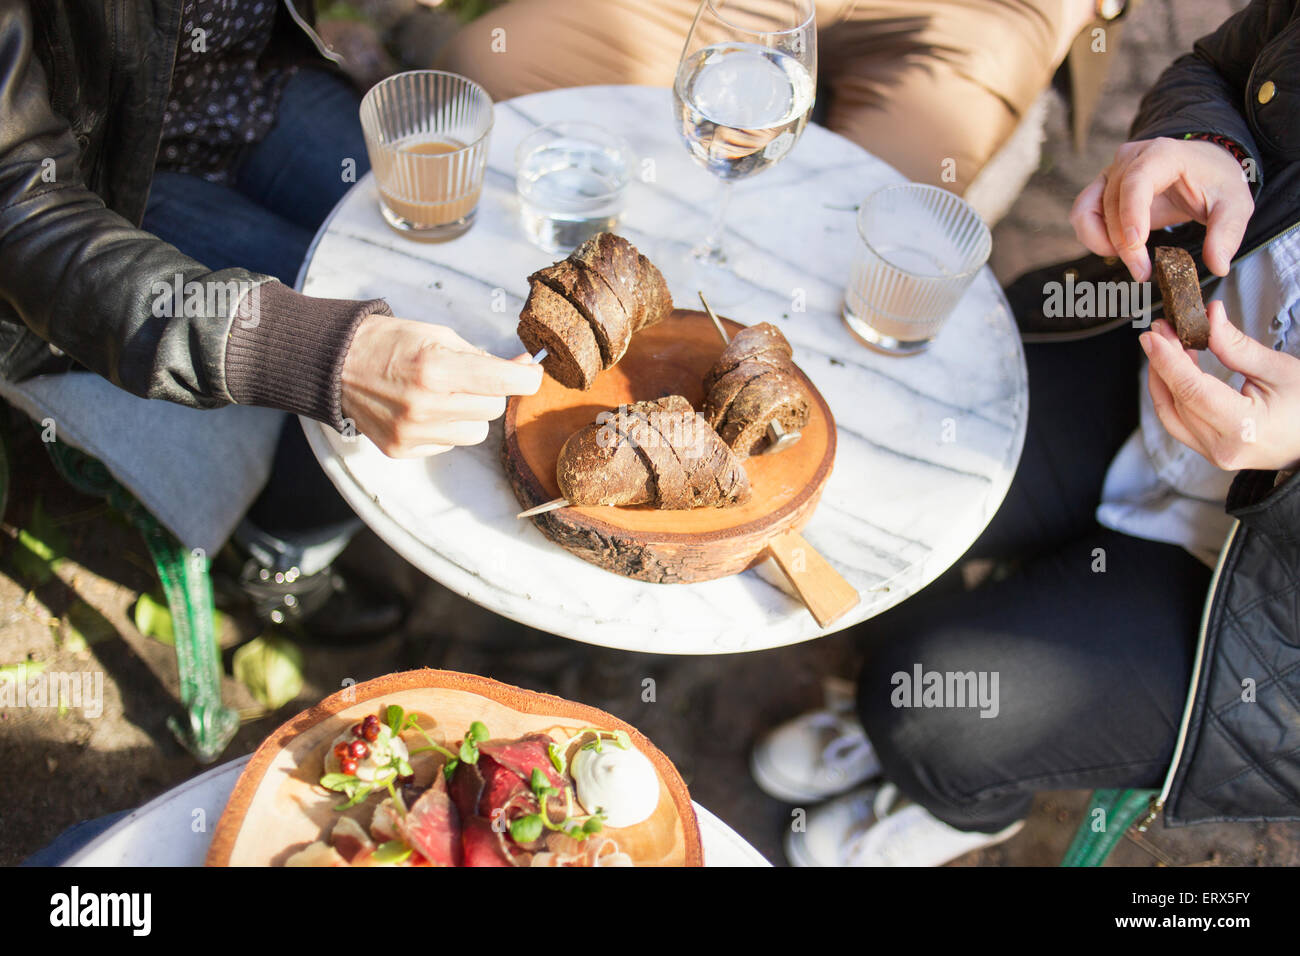 High angle view of hands holding bread slices at outdoor cafe - Stock Image